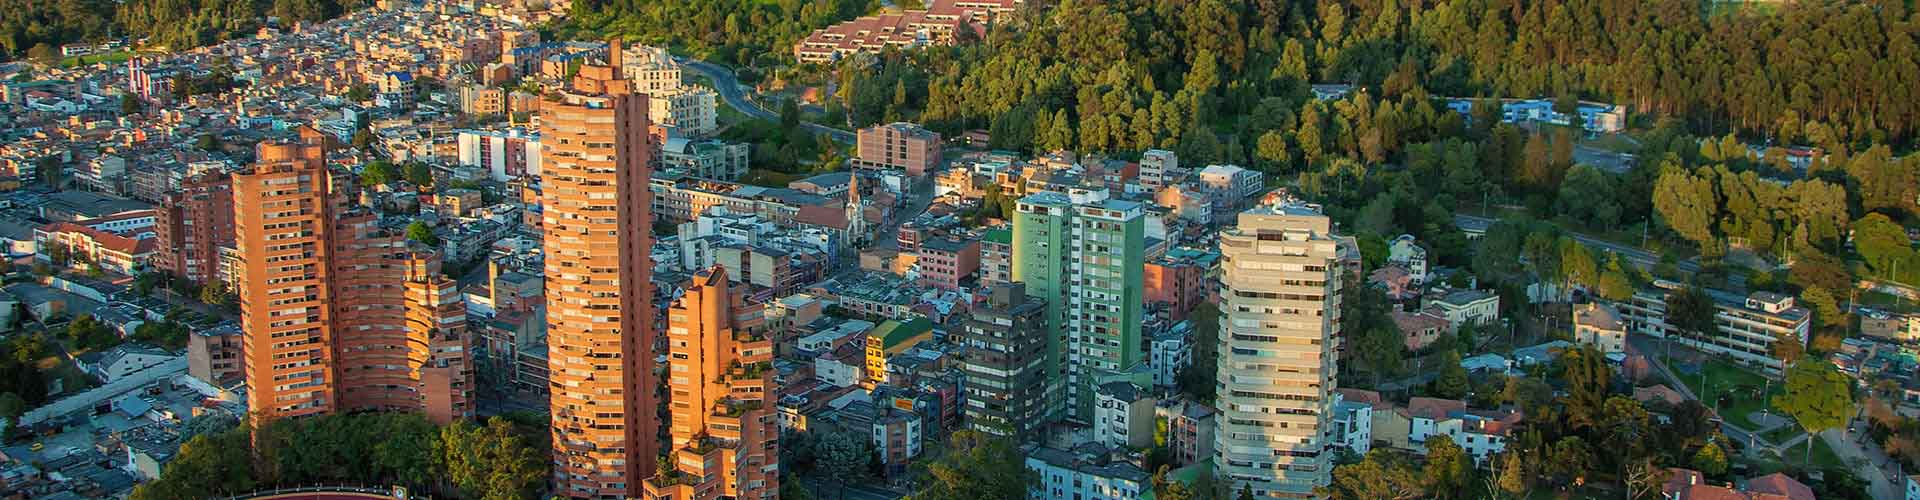 Bogotá – Hostels in Bogotá. Maps for Bogotá, Photos and Reviews for each hostel in Bogotá.